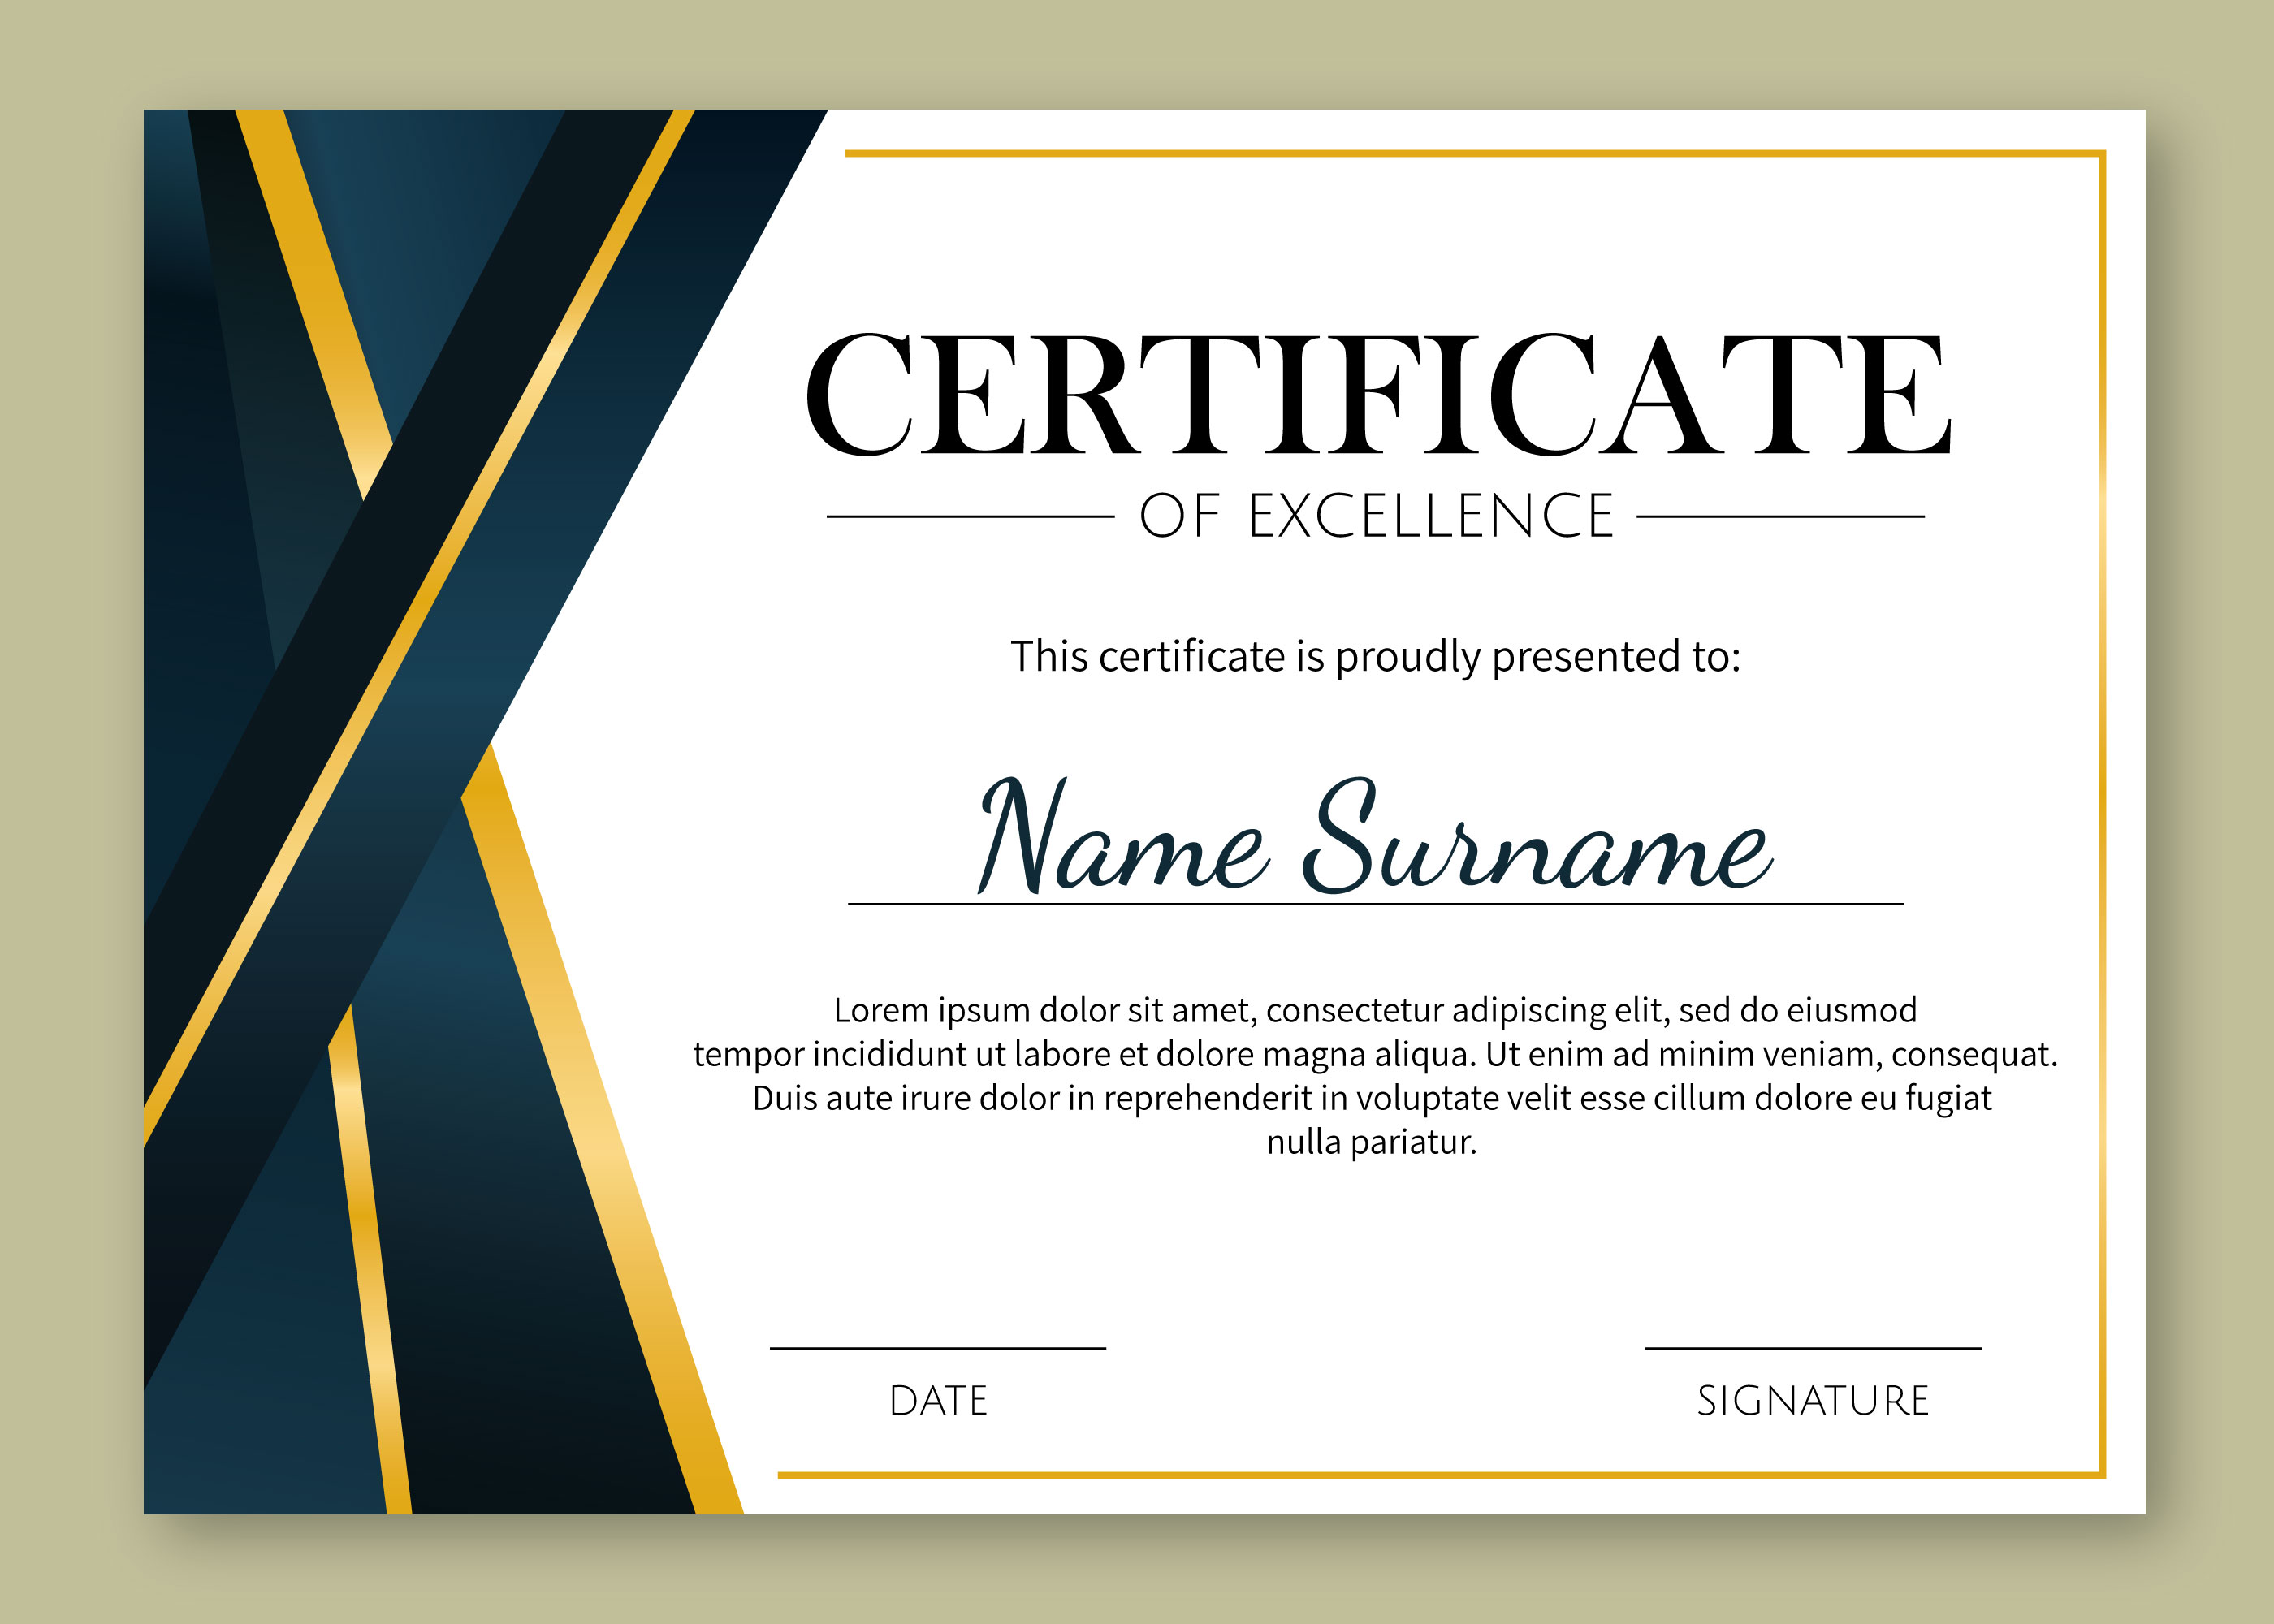 certificate of excellence template editable - gold details certificate of excellence template download